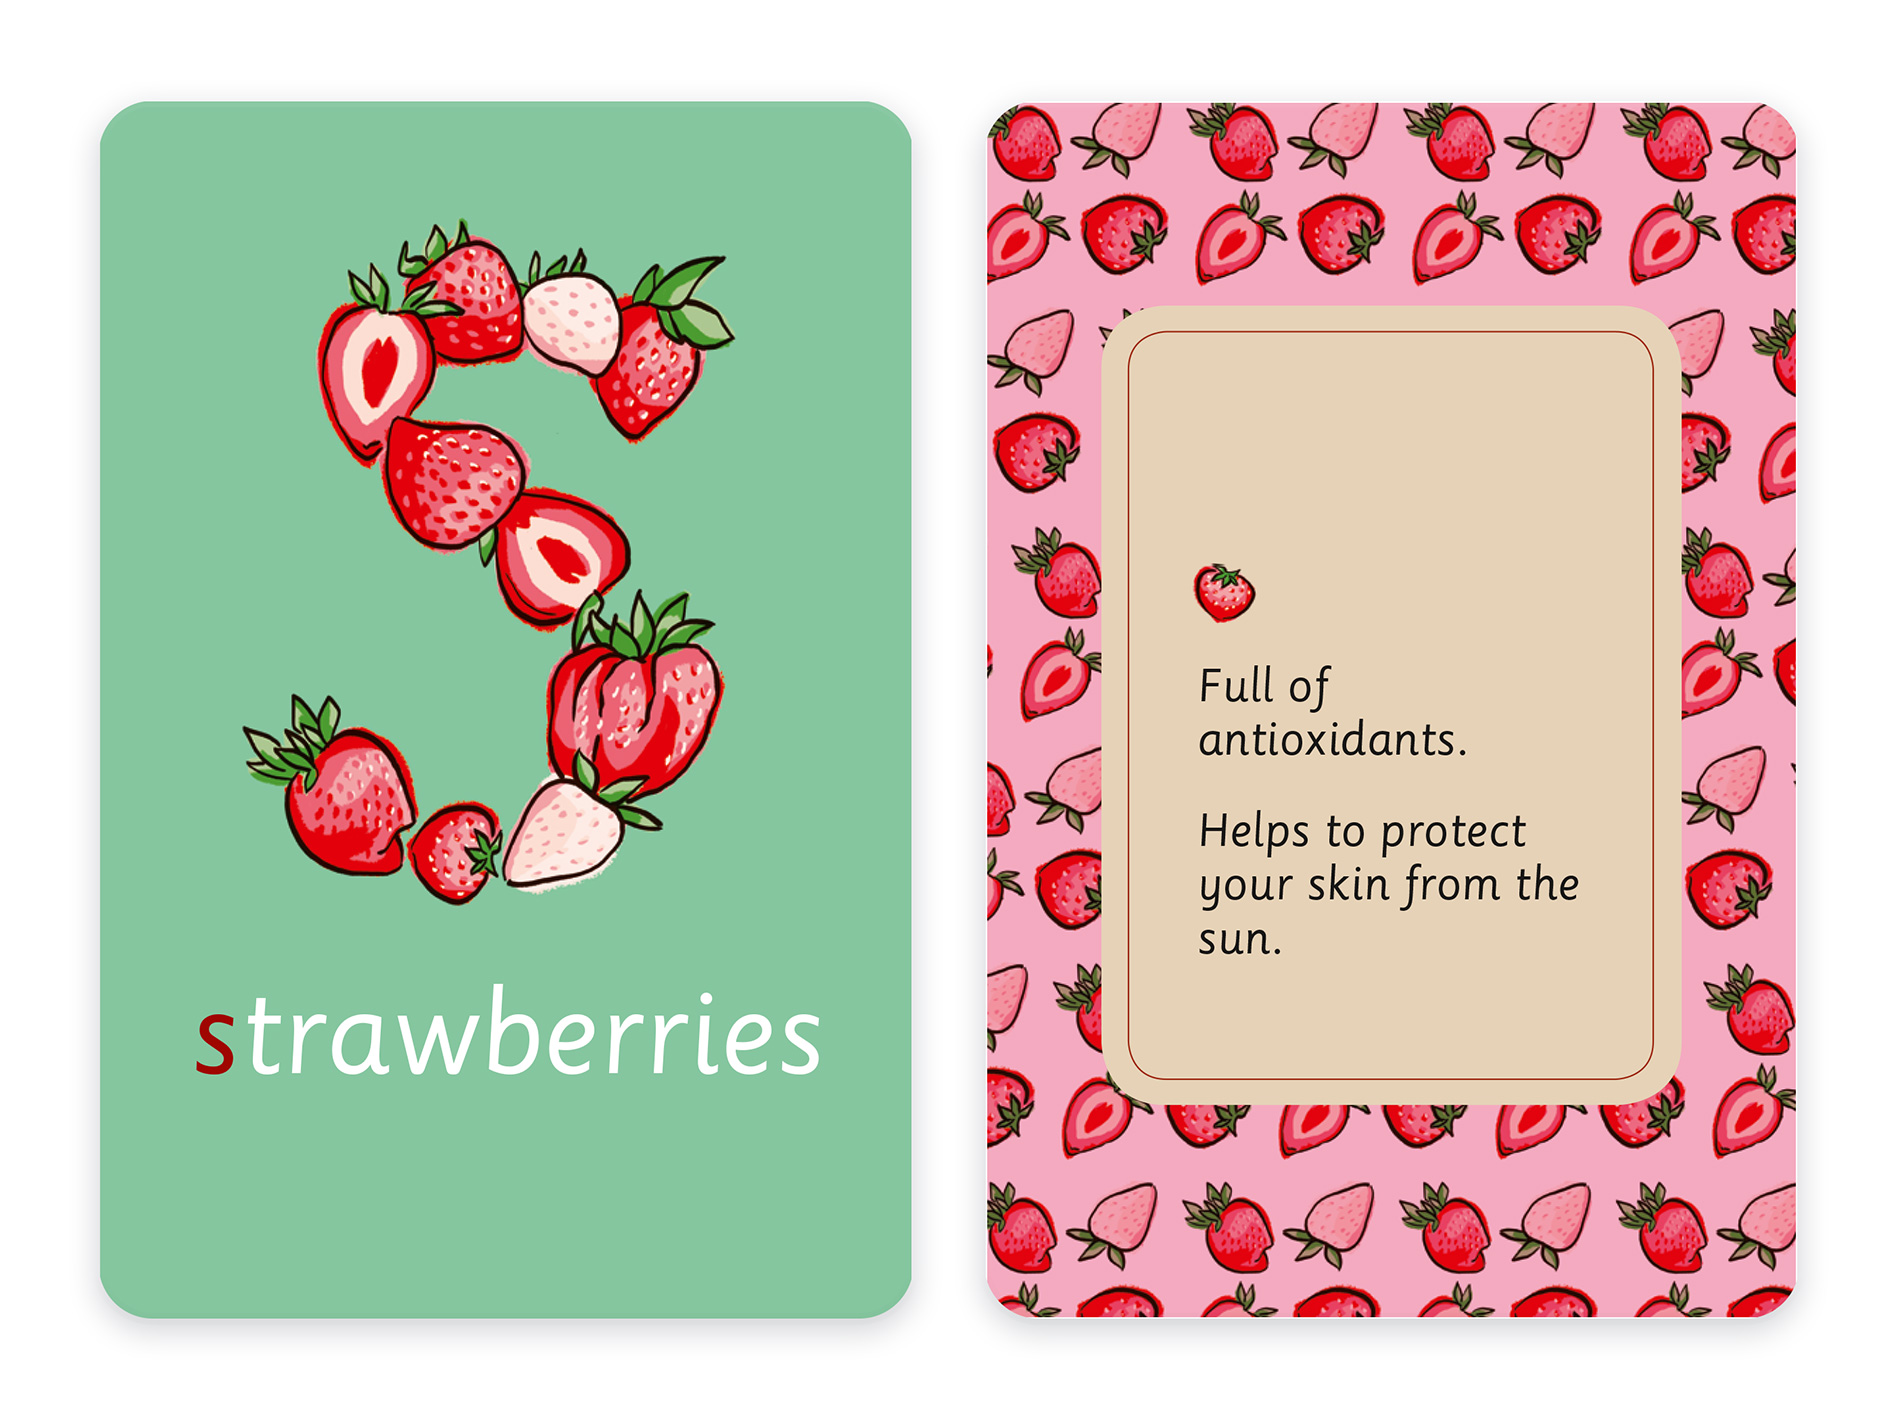 teaching-resource-flashcard-pattern-education-illustrations-strawberry-by-fiona-dunnett.jpg